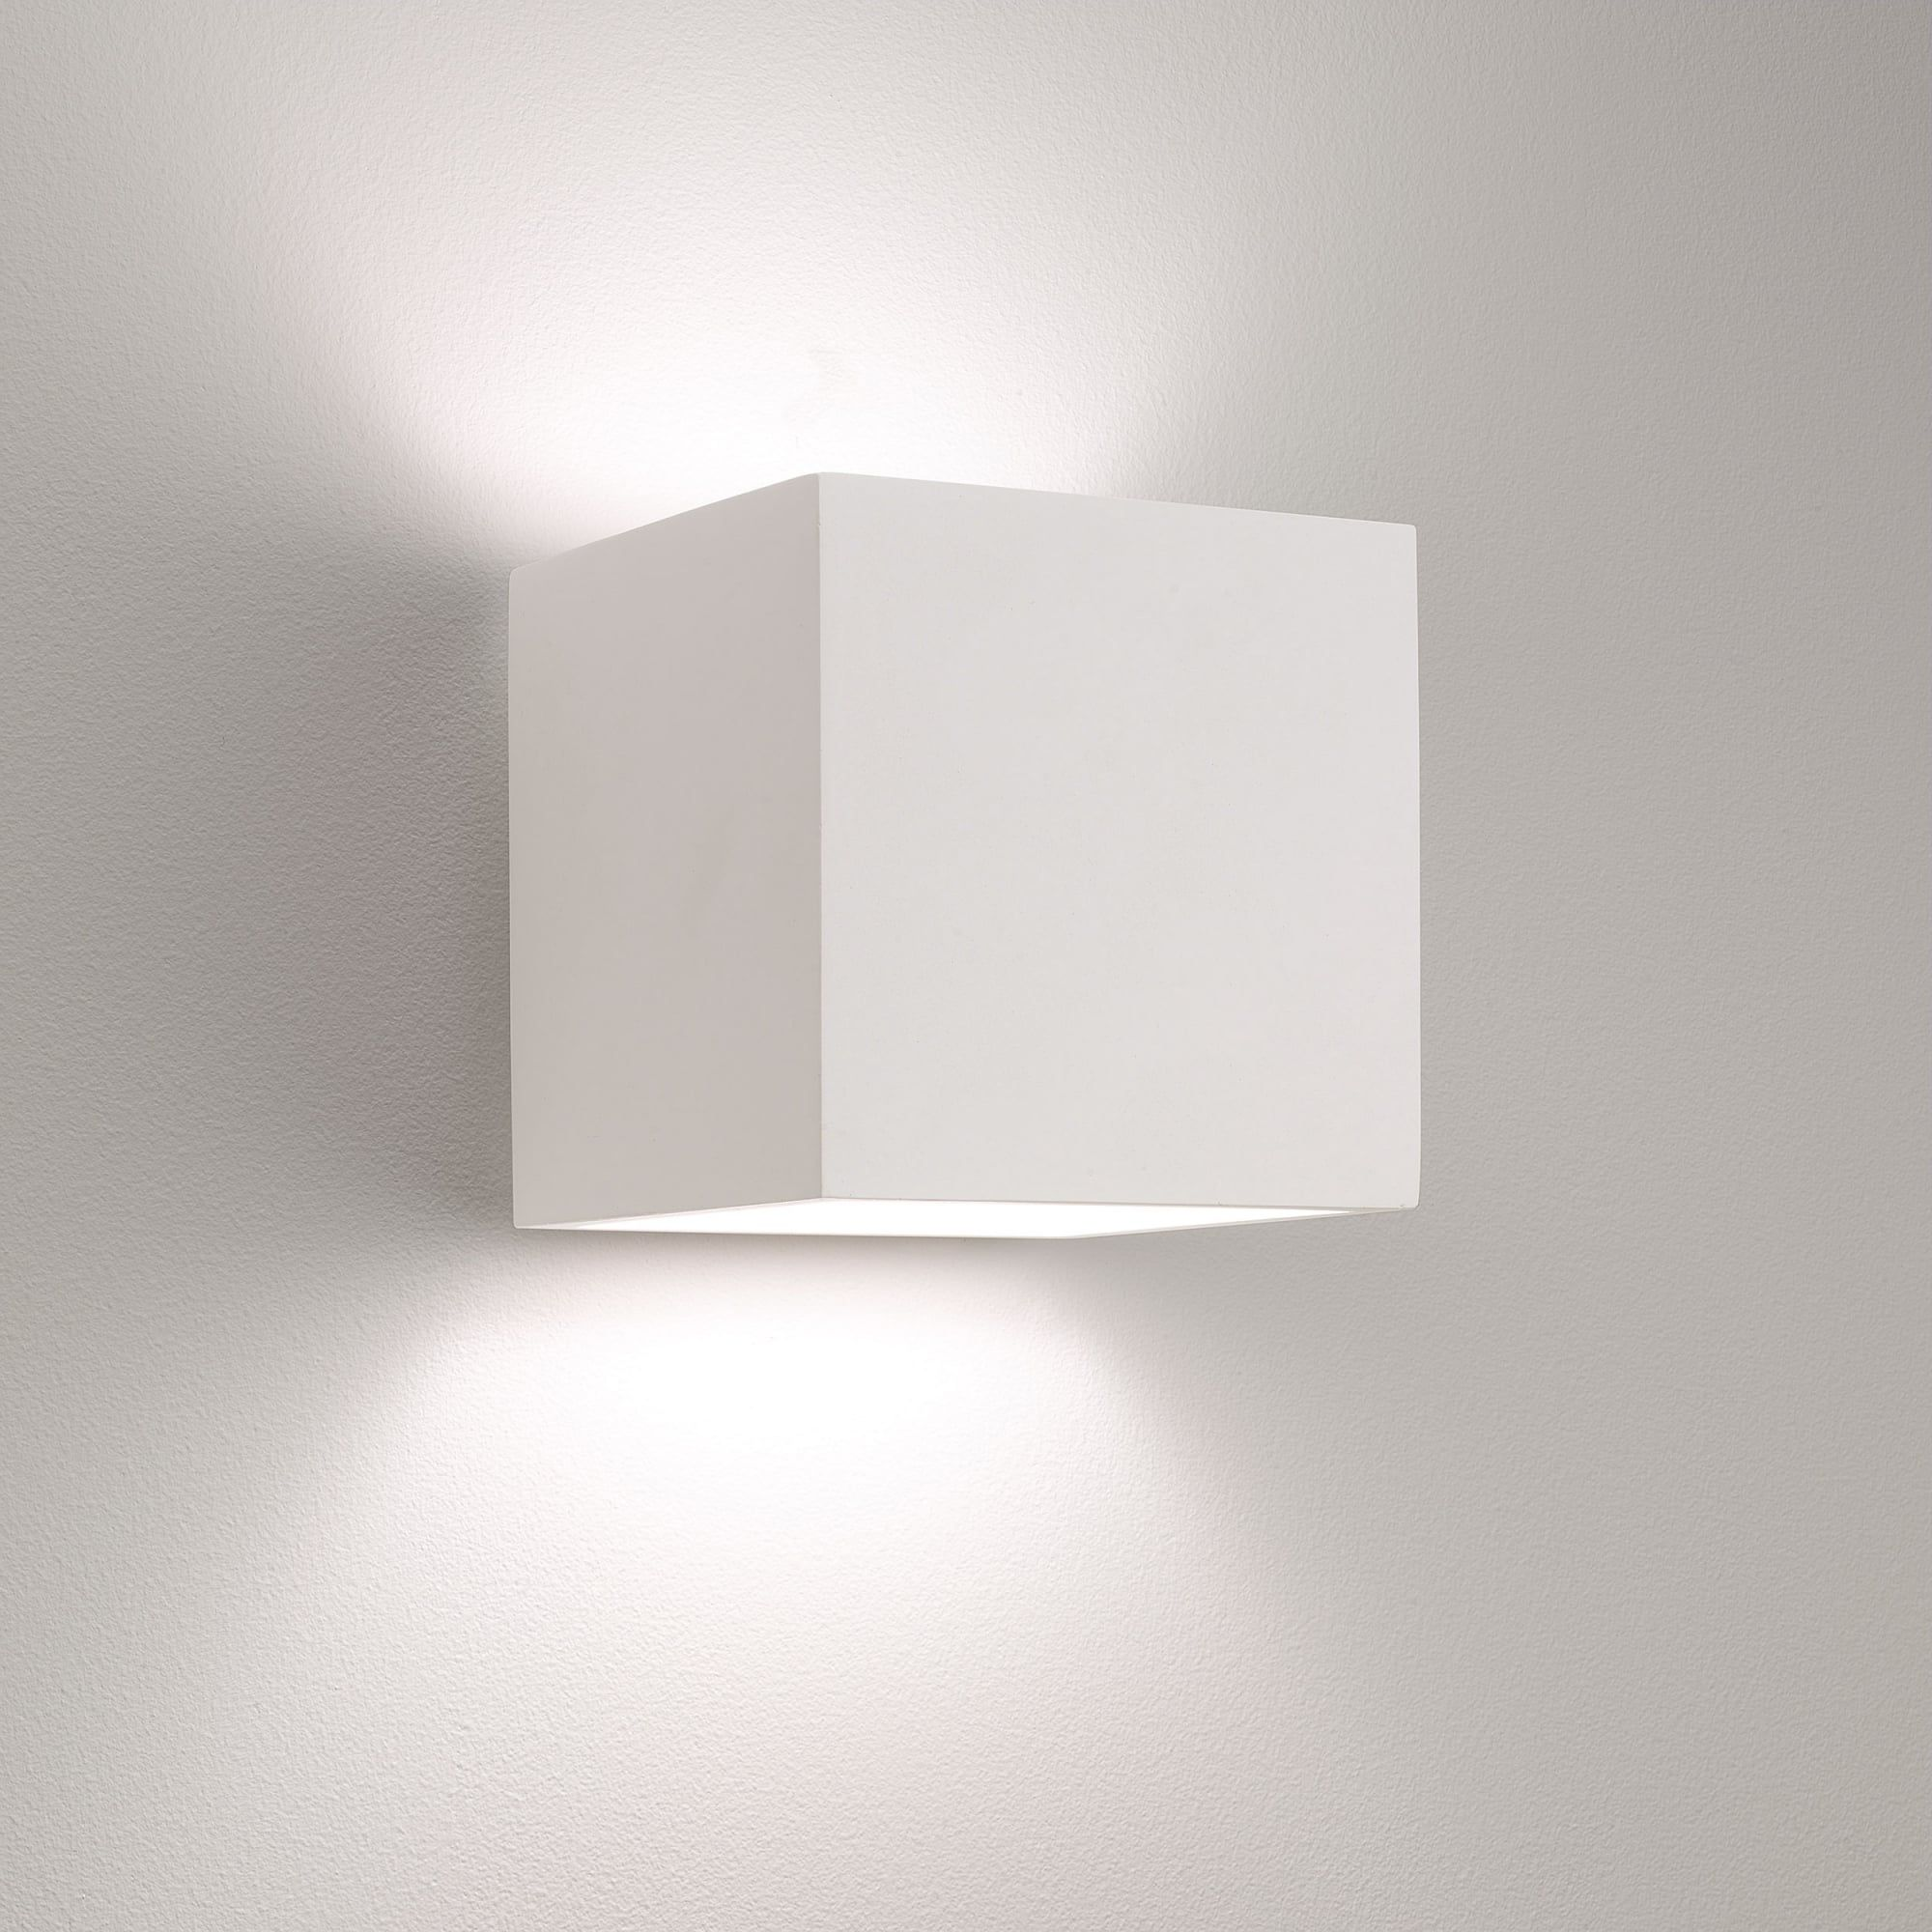 Deckenfluter Wandmontage Astro Lights Pienza 165 E27 White Plaster Wall Light Light